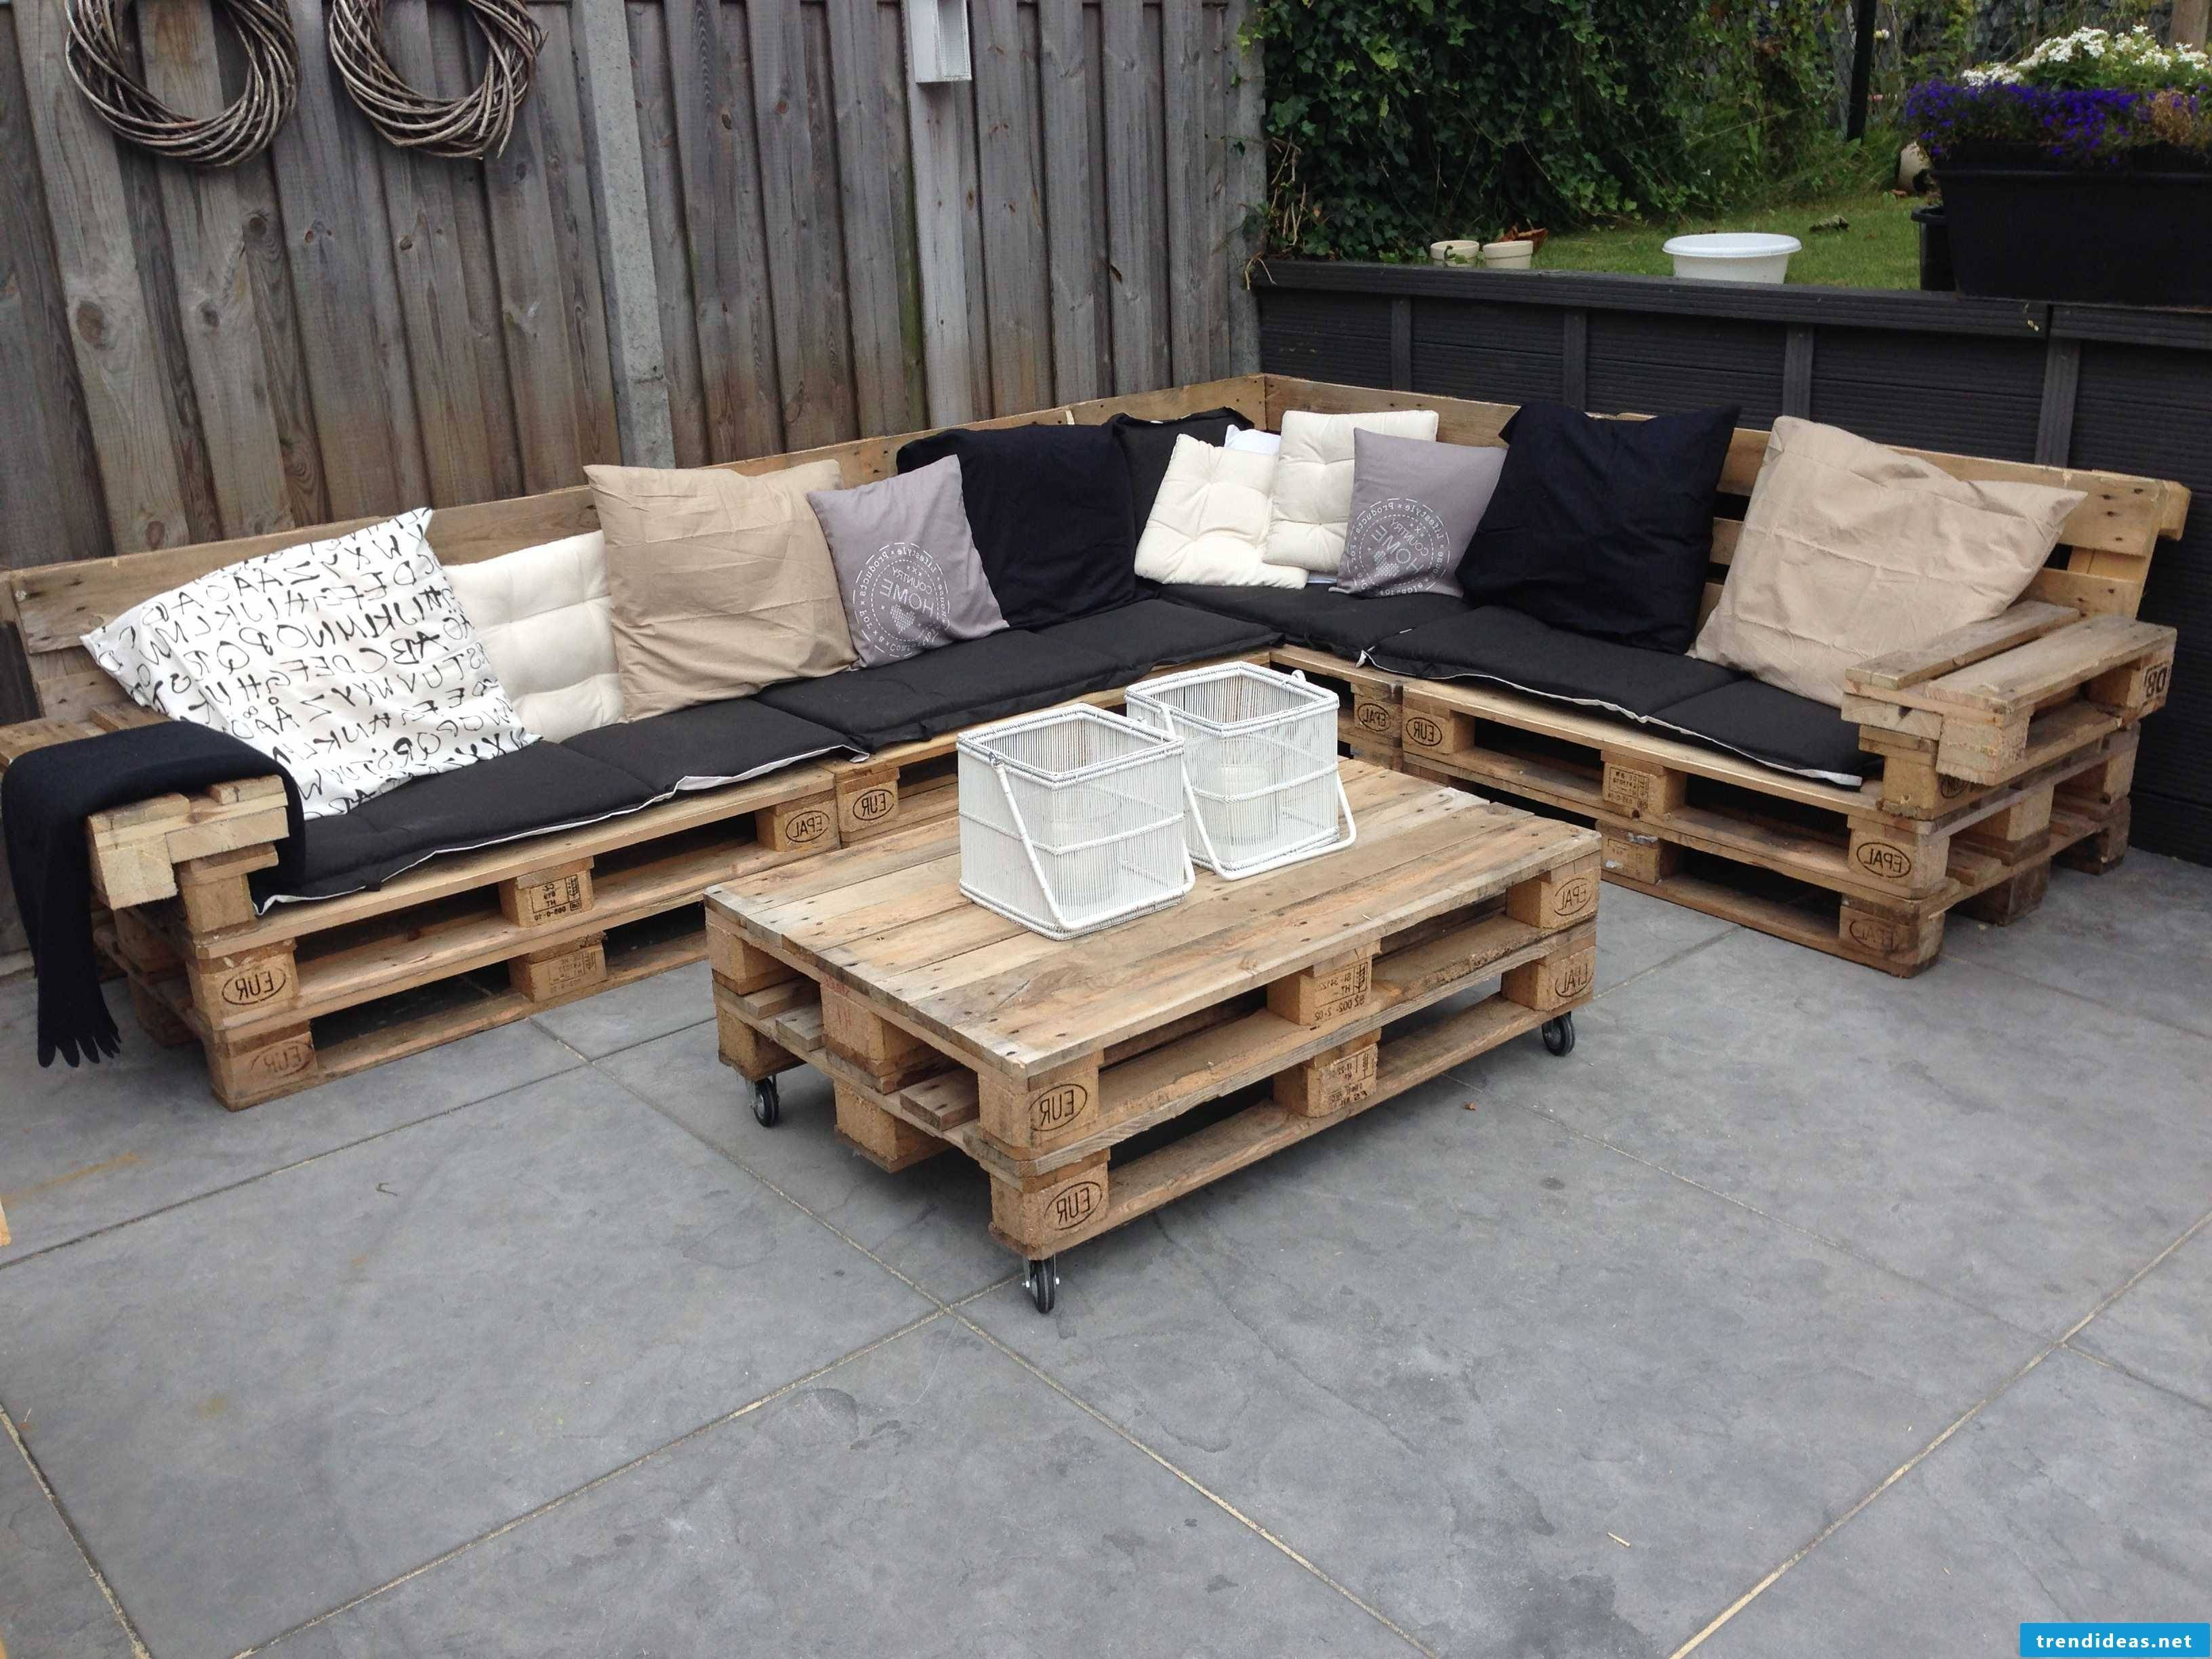 Pallettenschick to build yourself